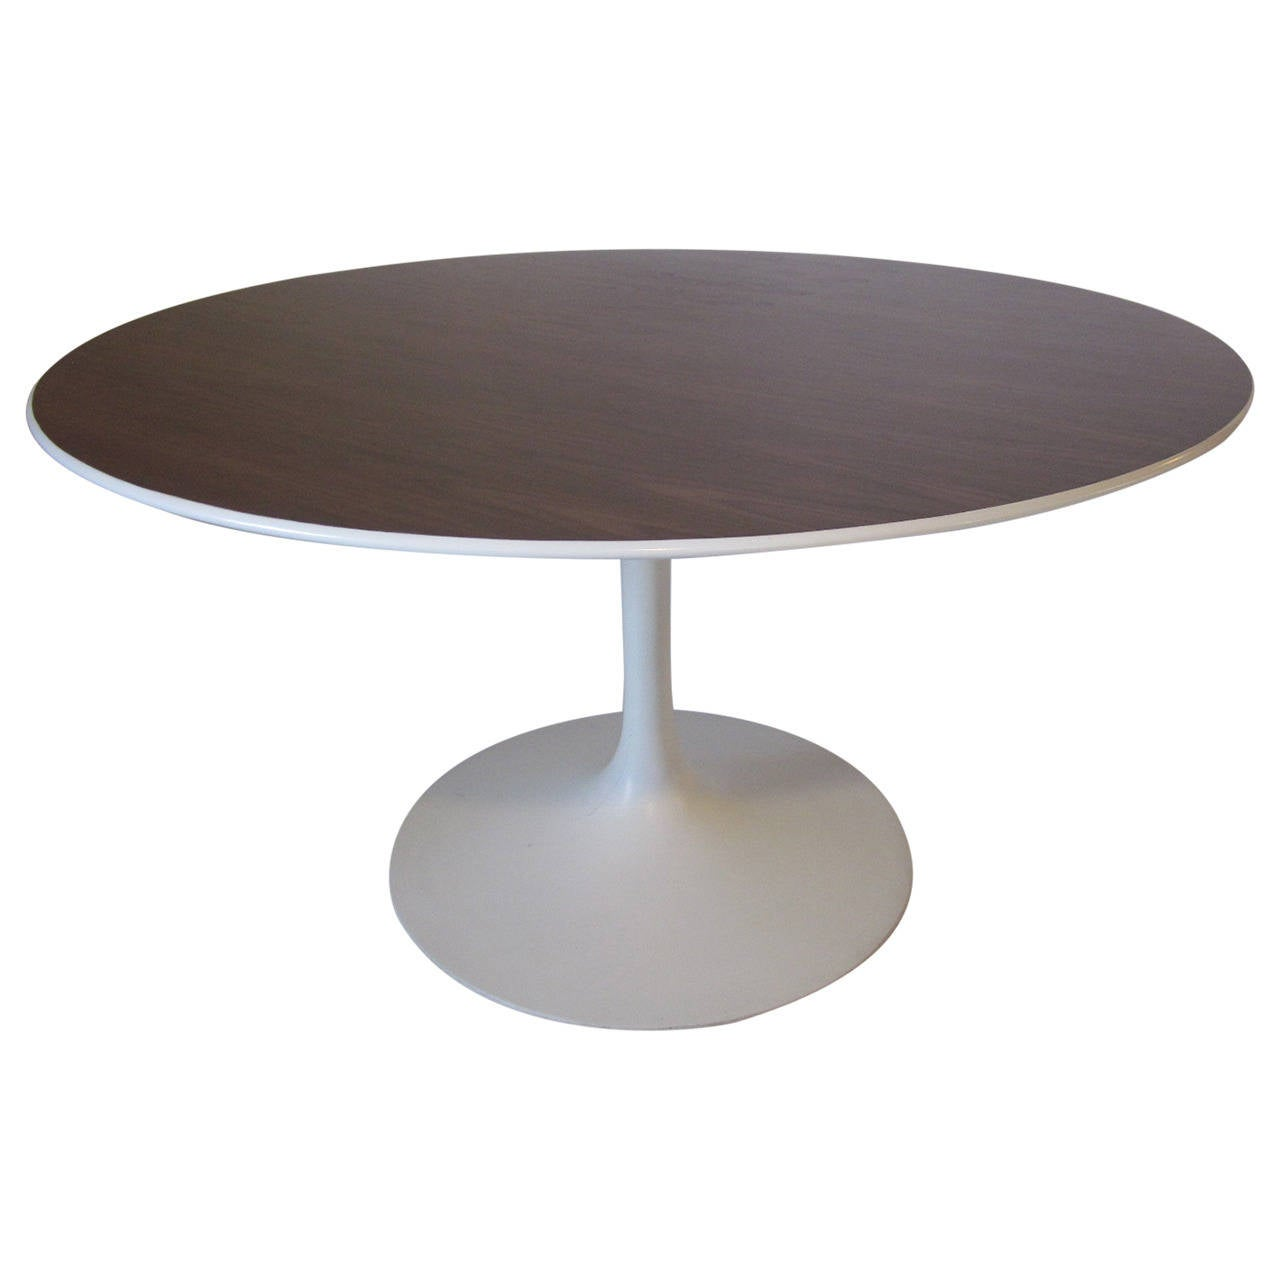 Eero saarinen tulip dining table at 1stdibs for Tulip dining table